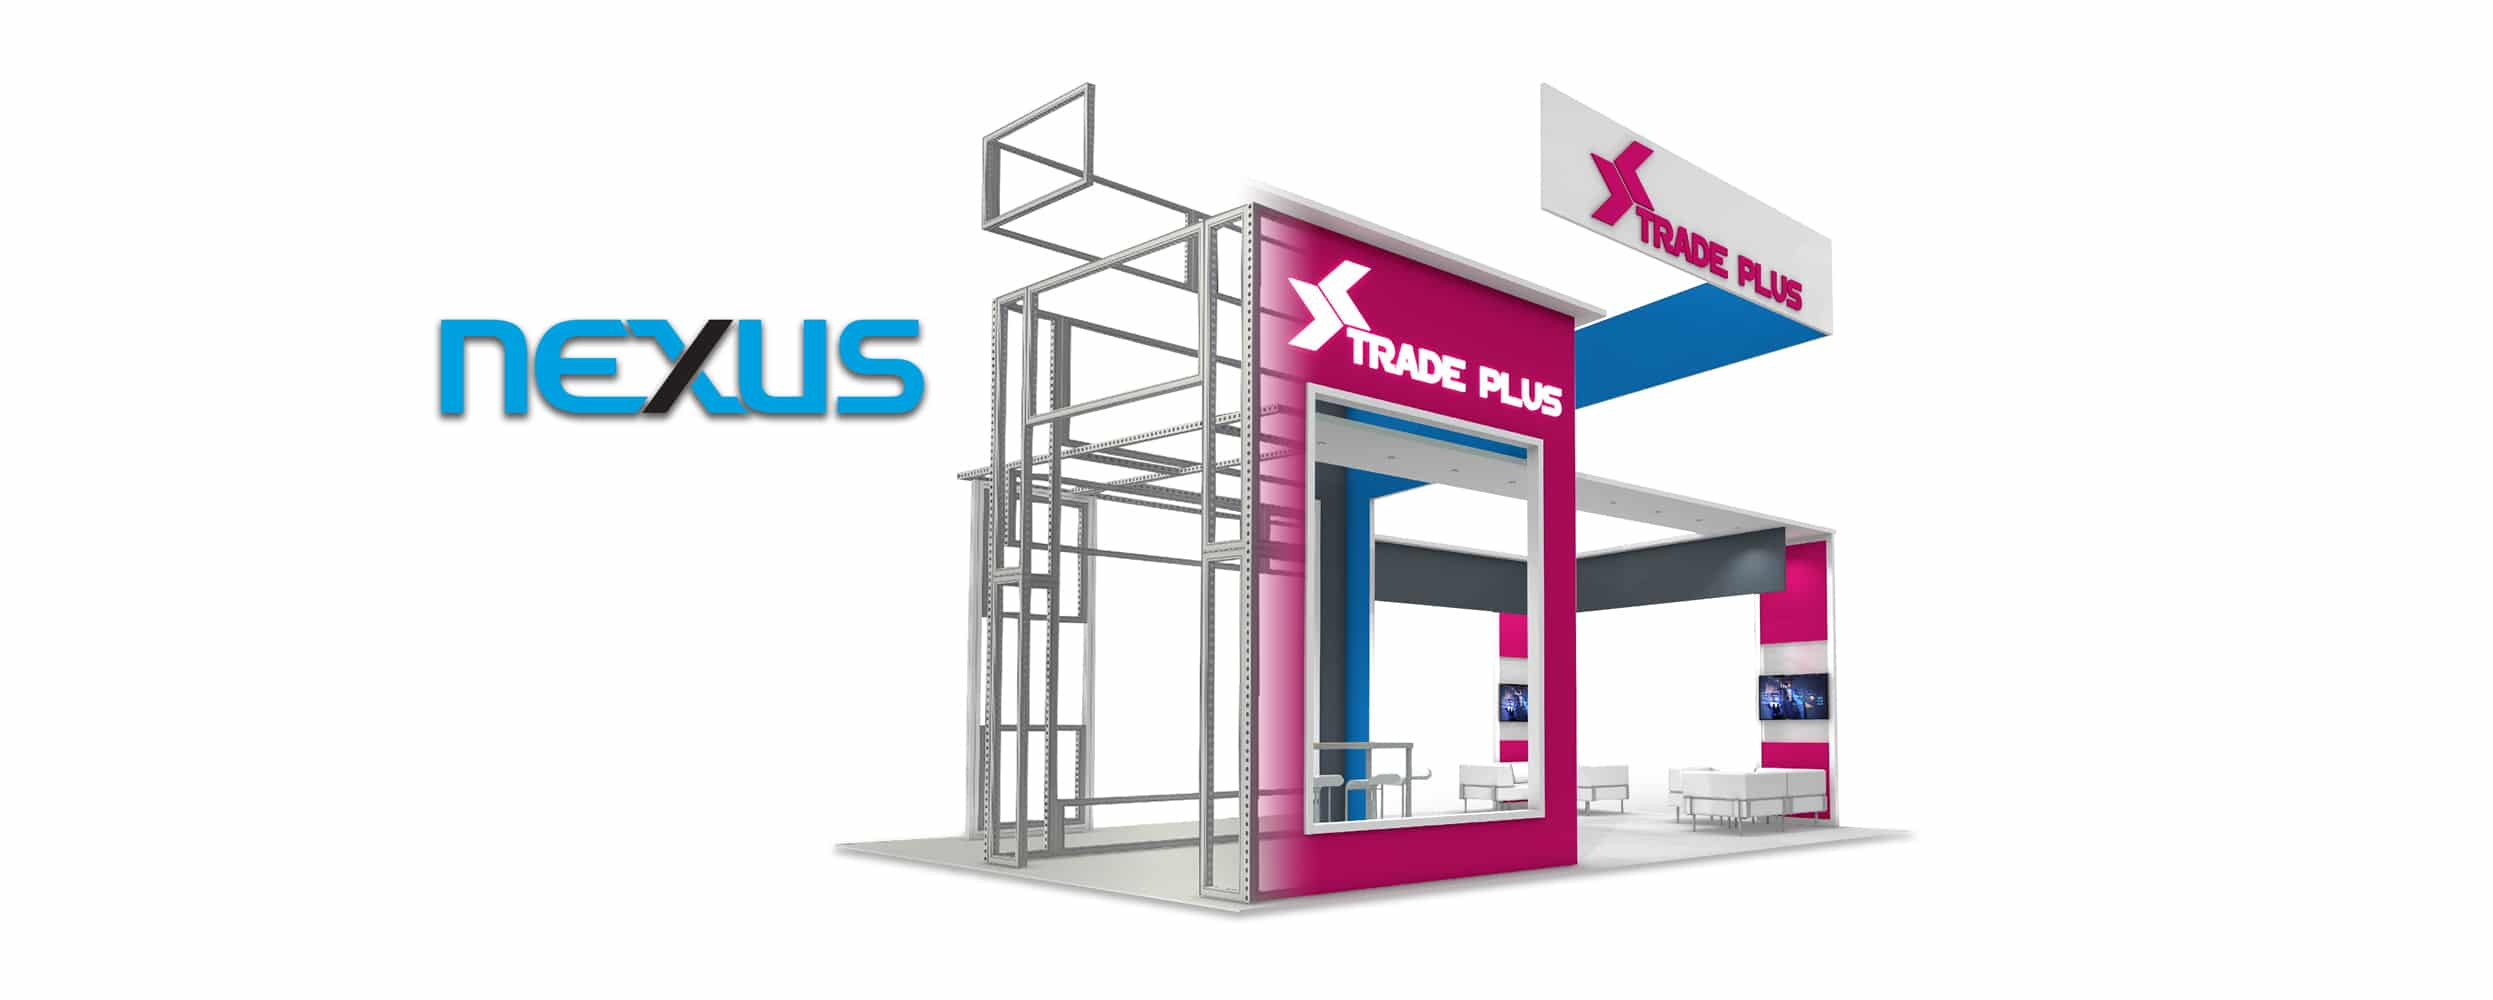 Nexus booth render with exposed frames